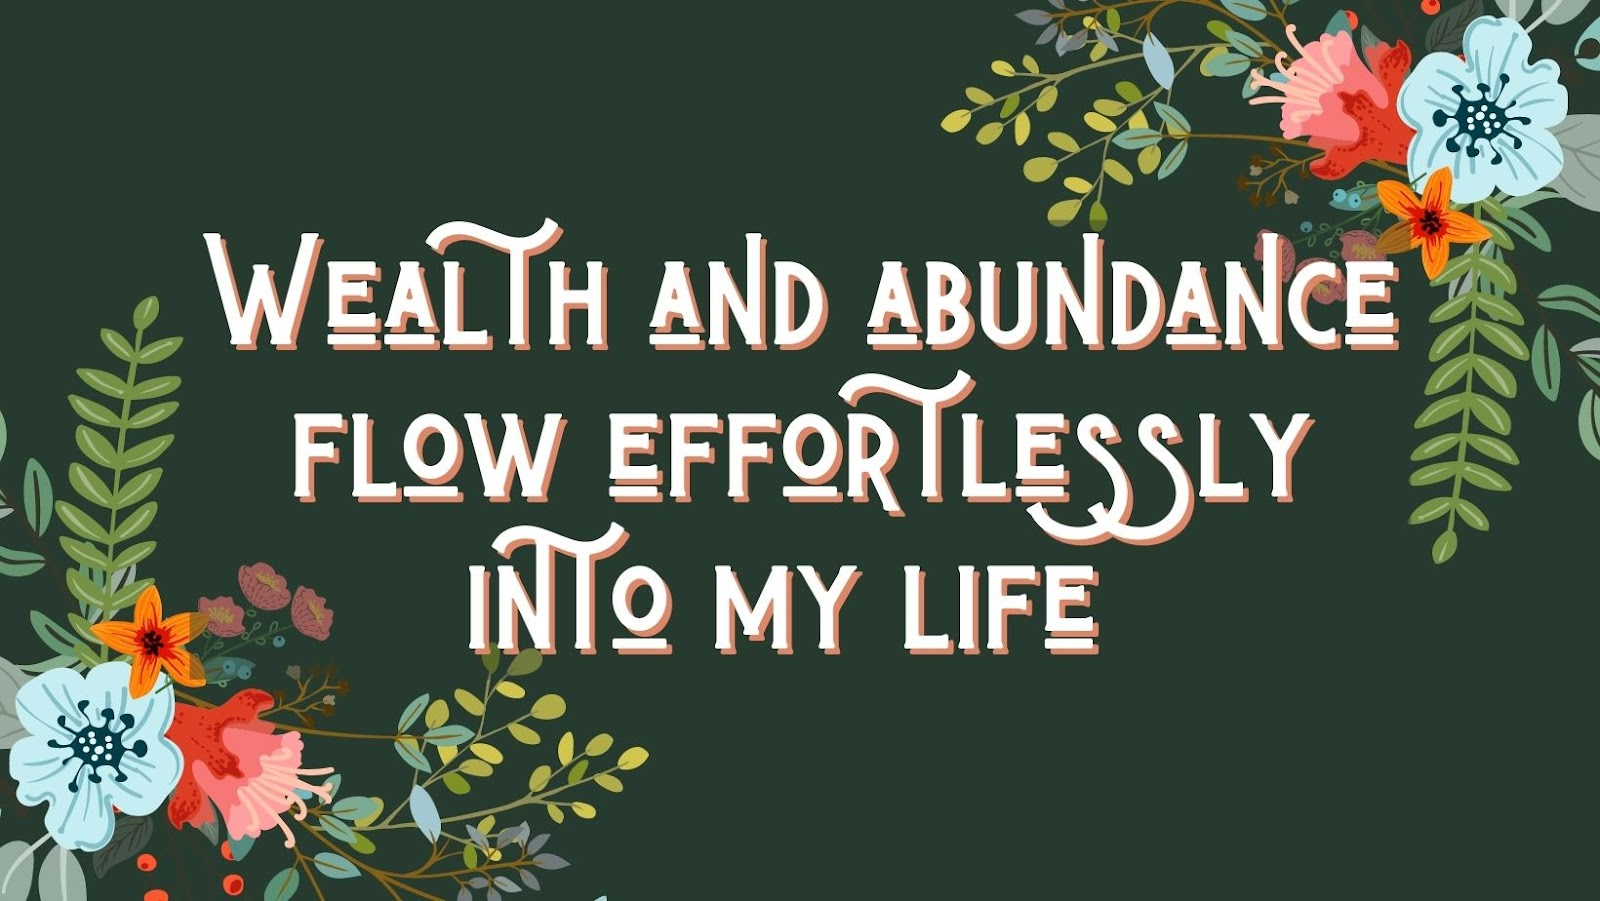 confidence affirmation: wealth and abundance flow effortlessly into my life